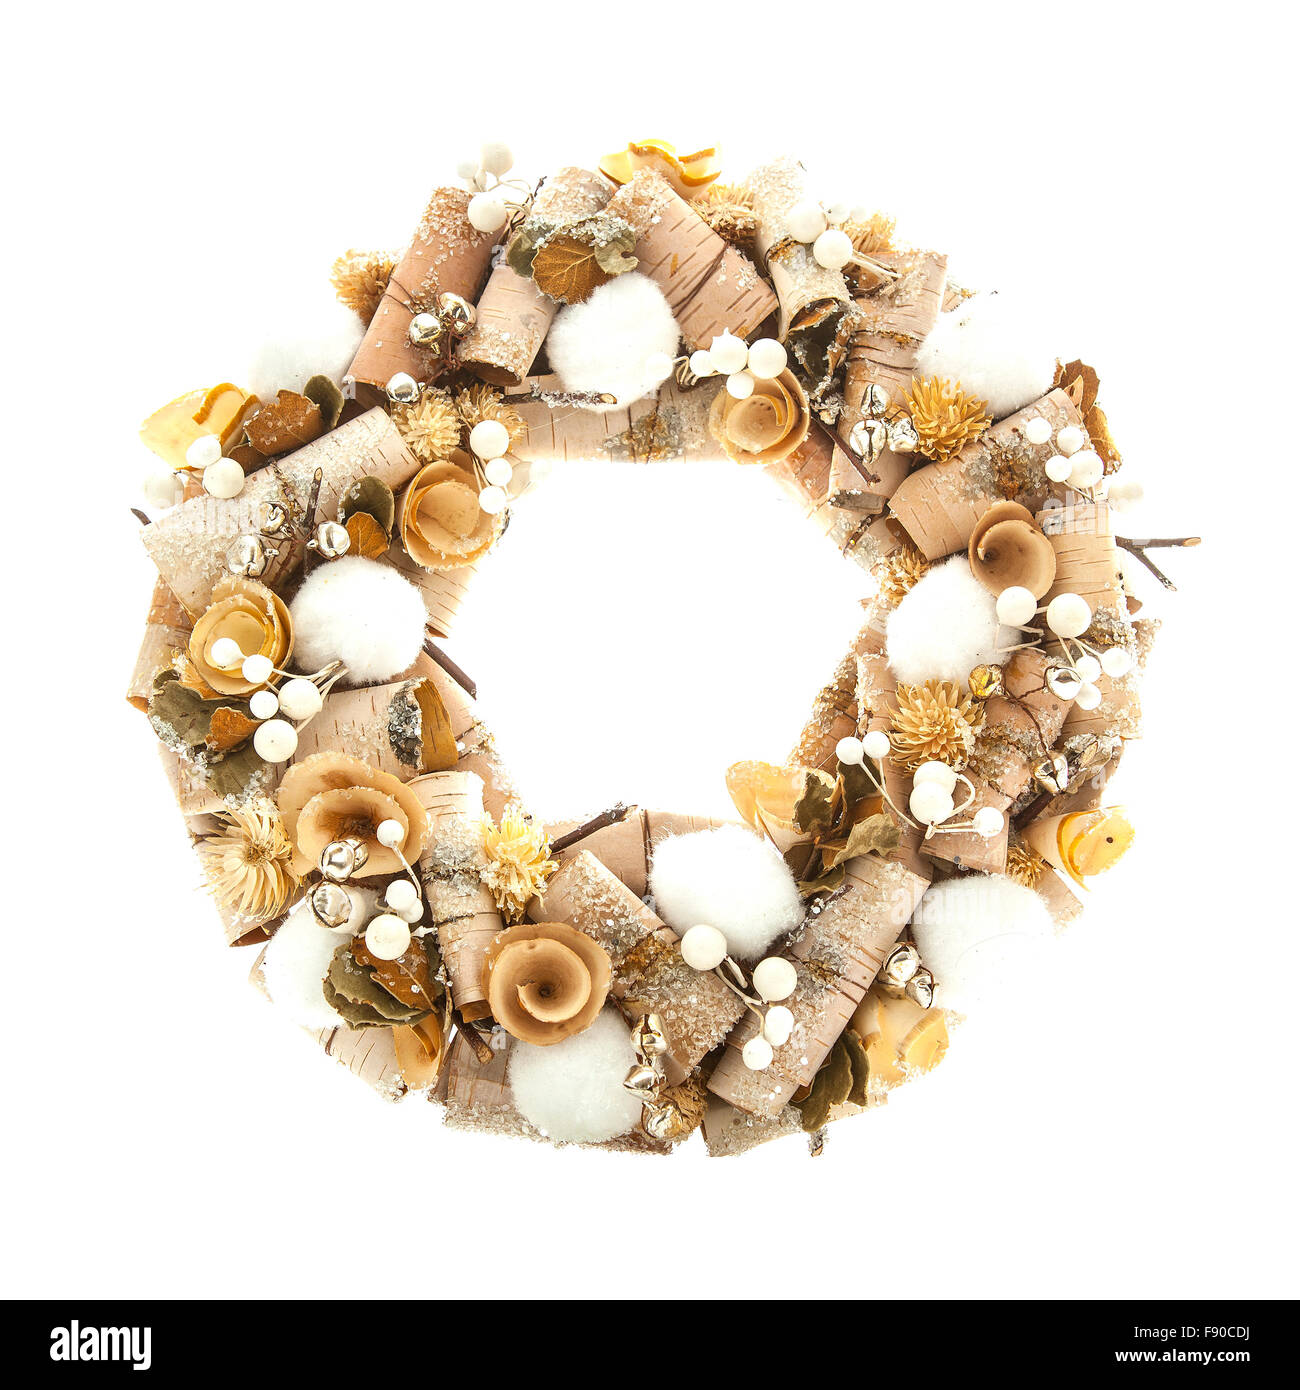 Modern Christmas wreath with decorations isolated on white background - Stock Image